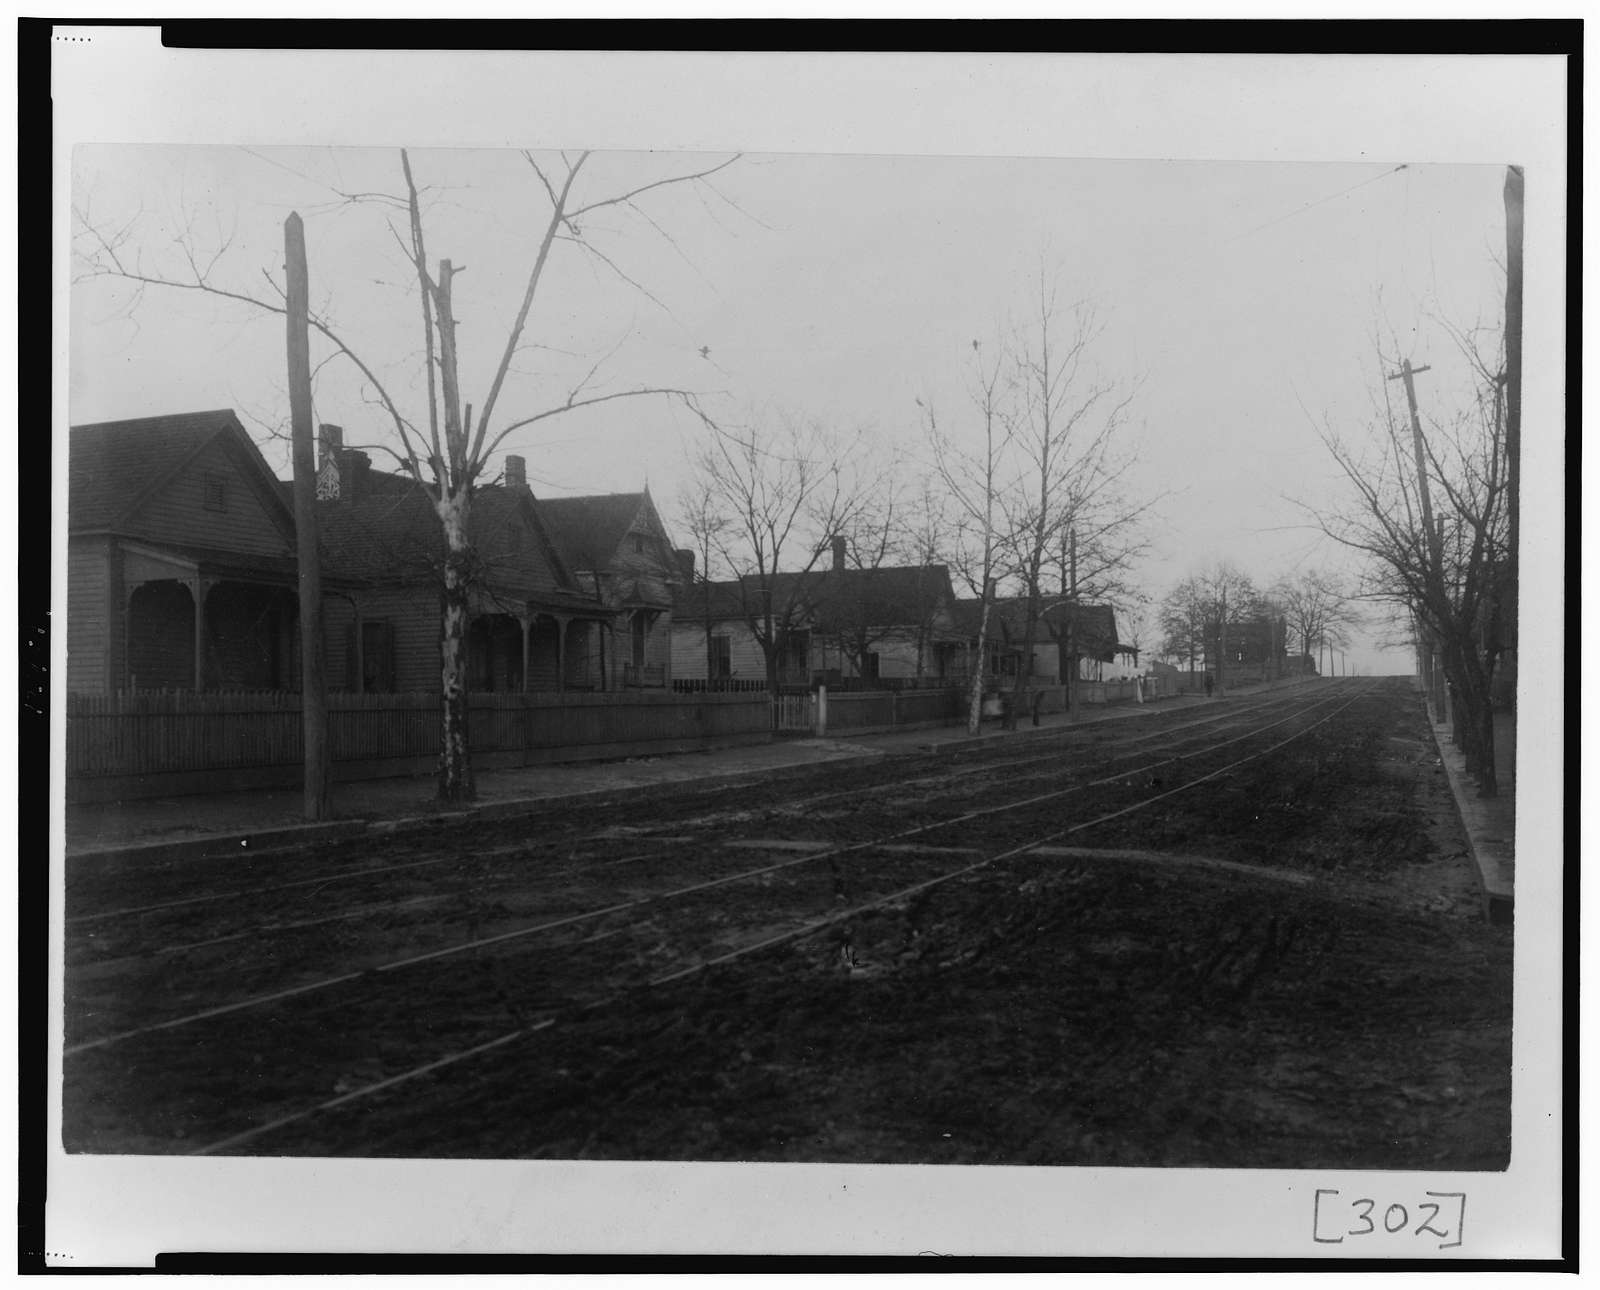 [View of unpaved street with houses in Georgia]